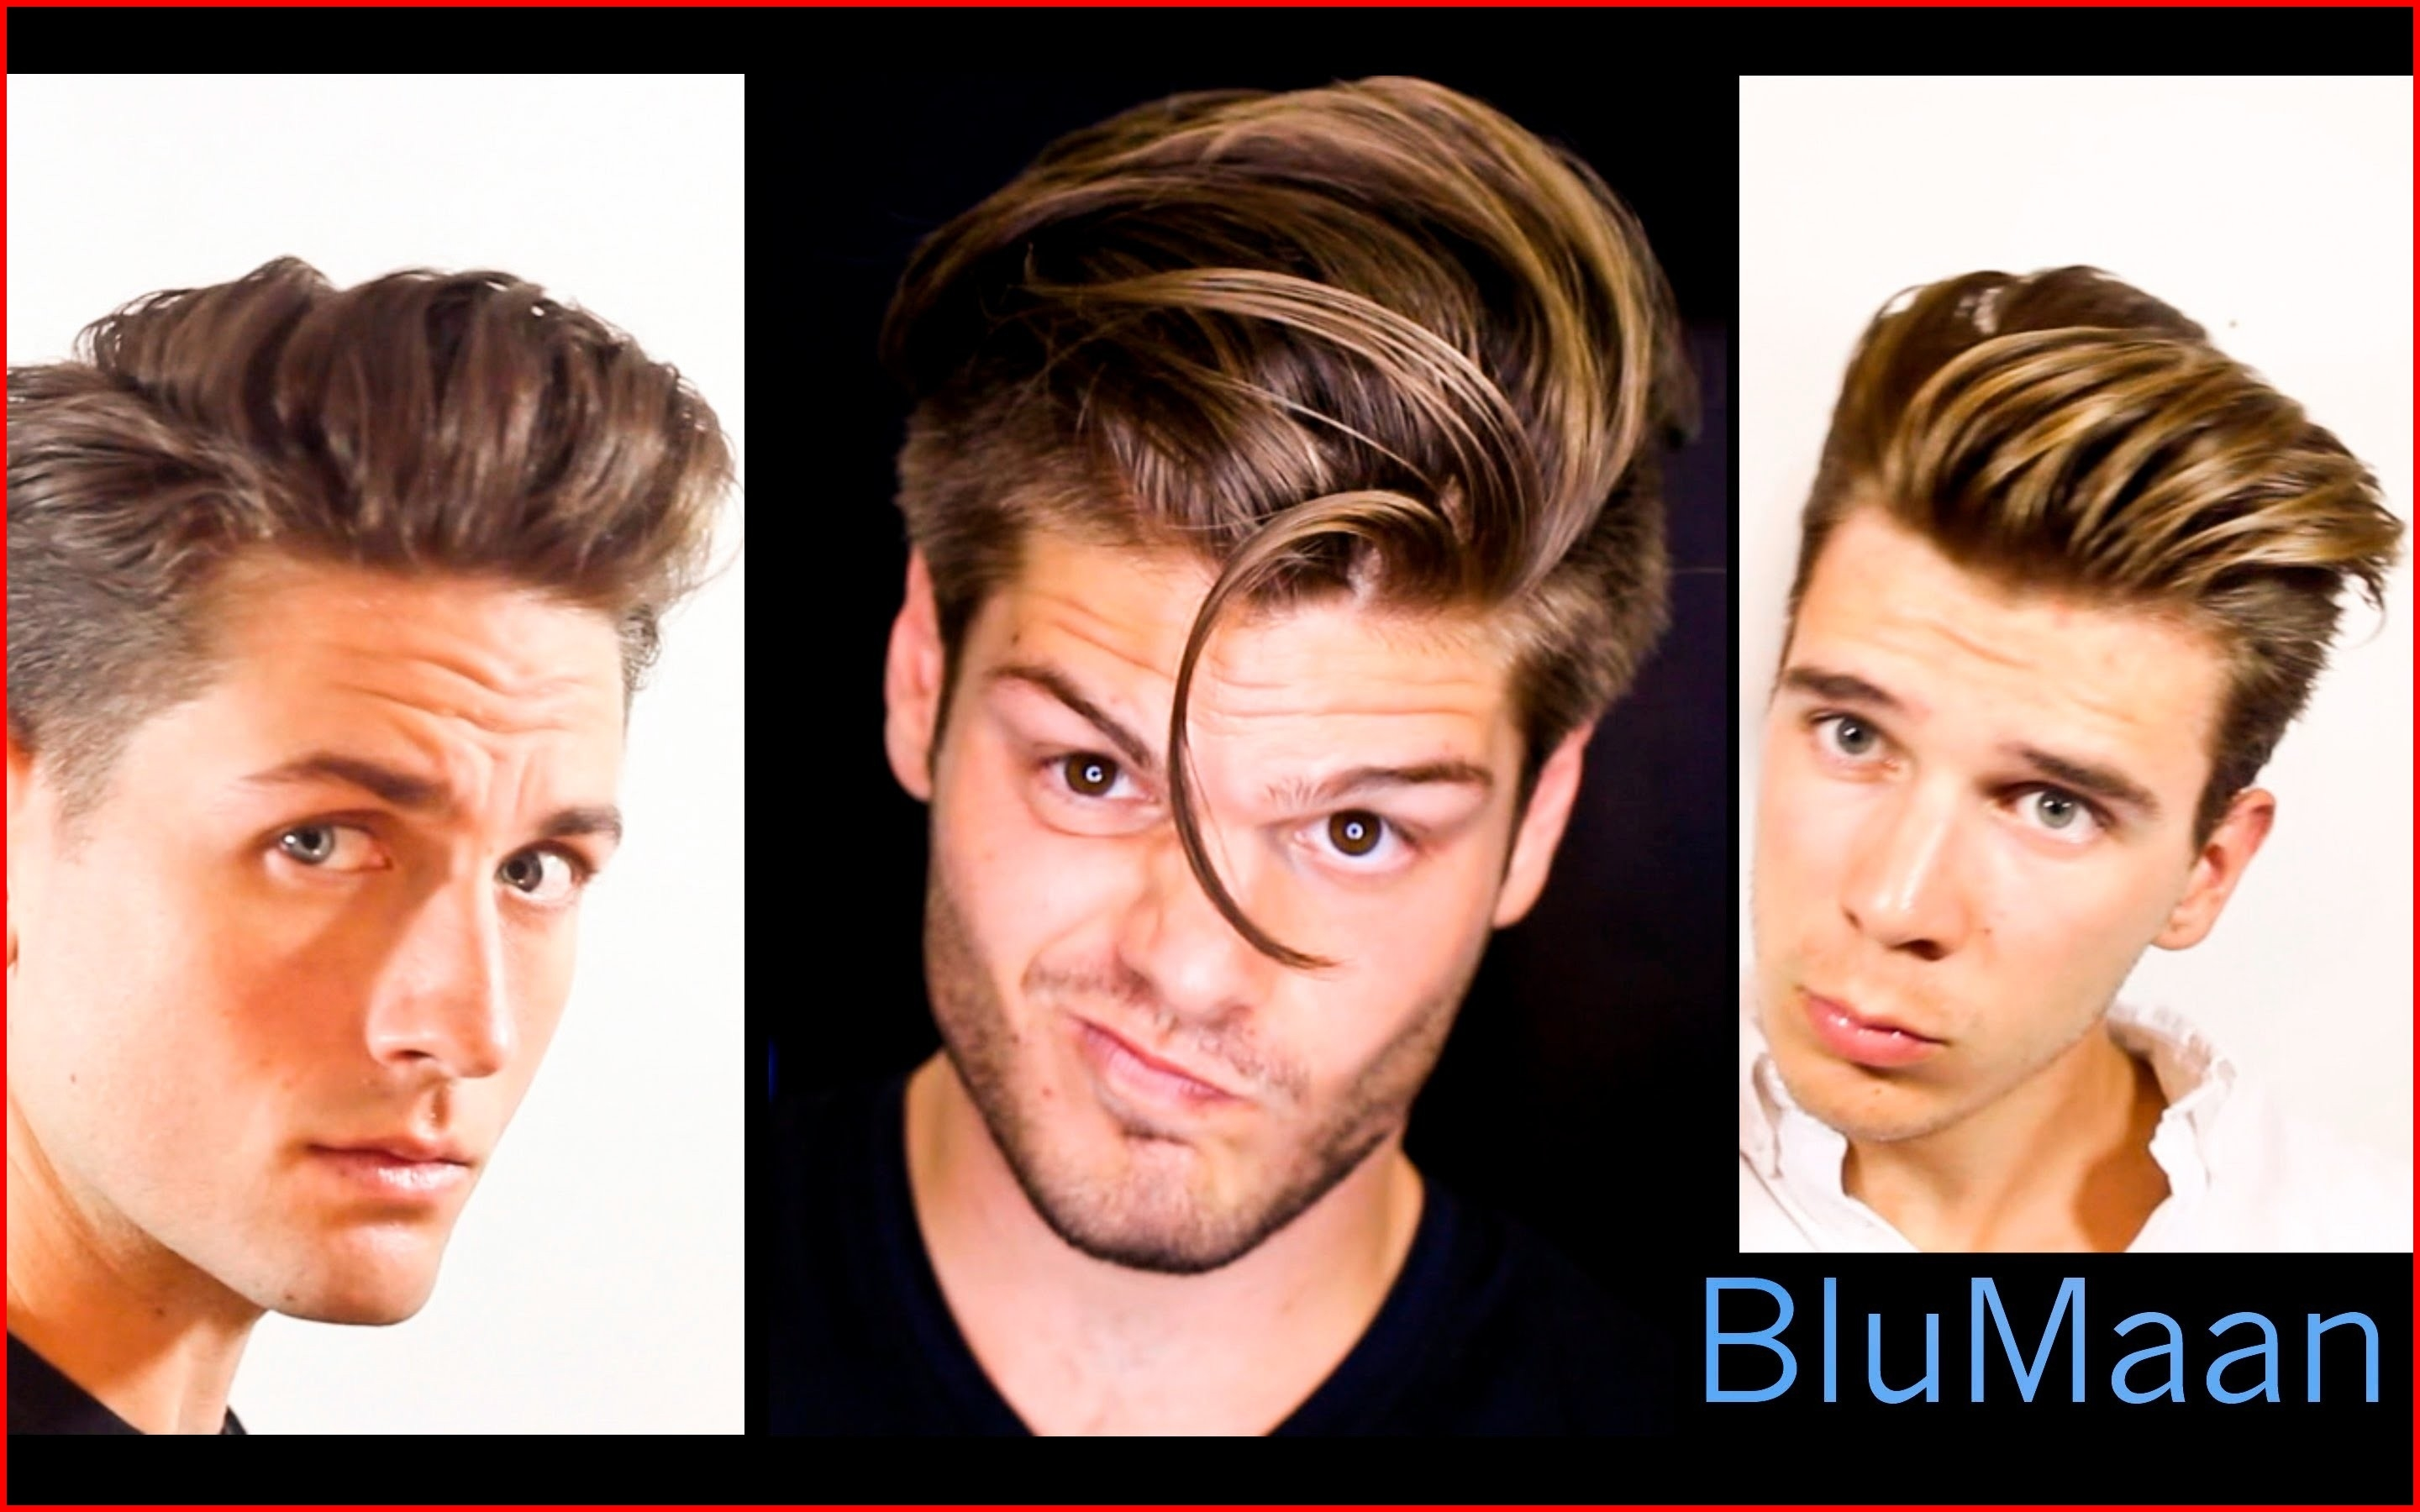 Apps For Haircuts Images - Haircuts 2018 Men Fade with Best Haircut App For Android